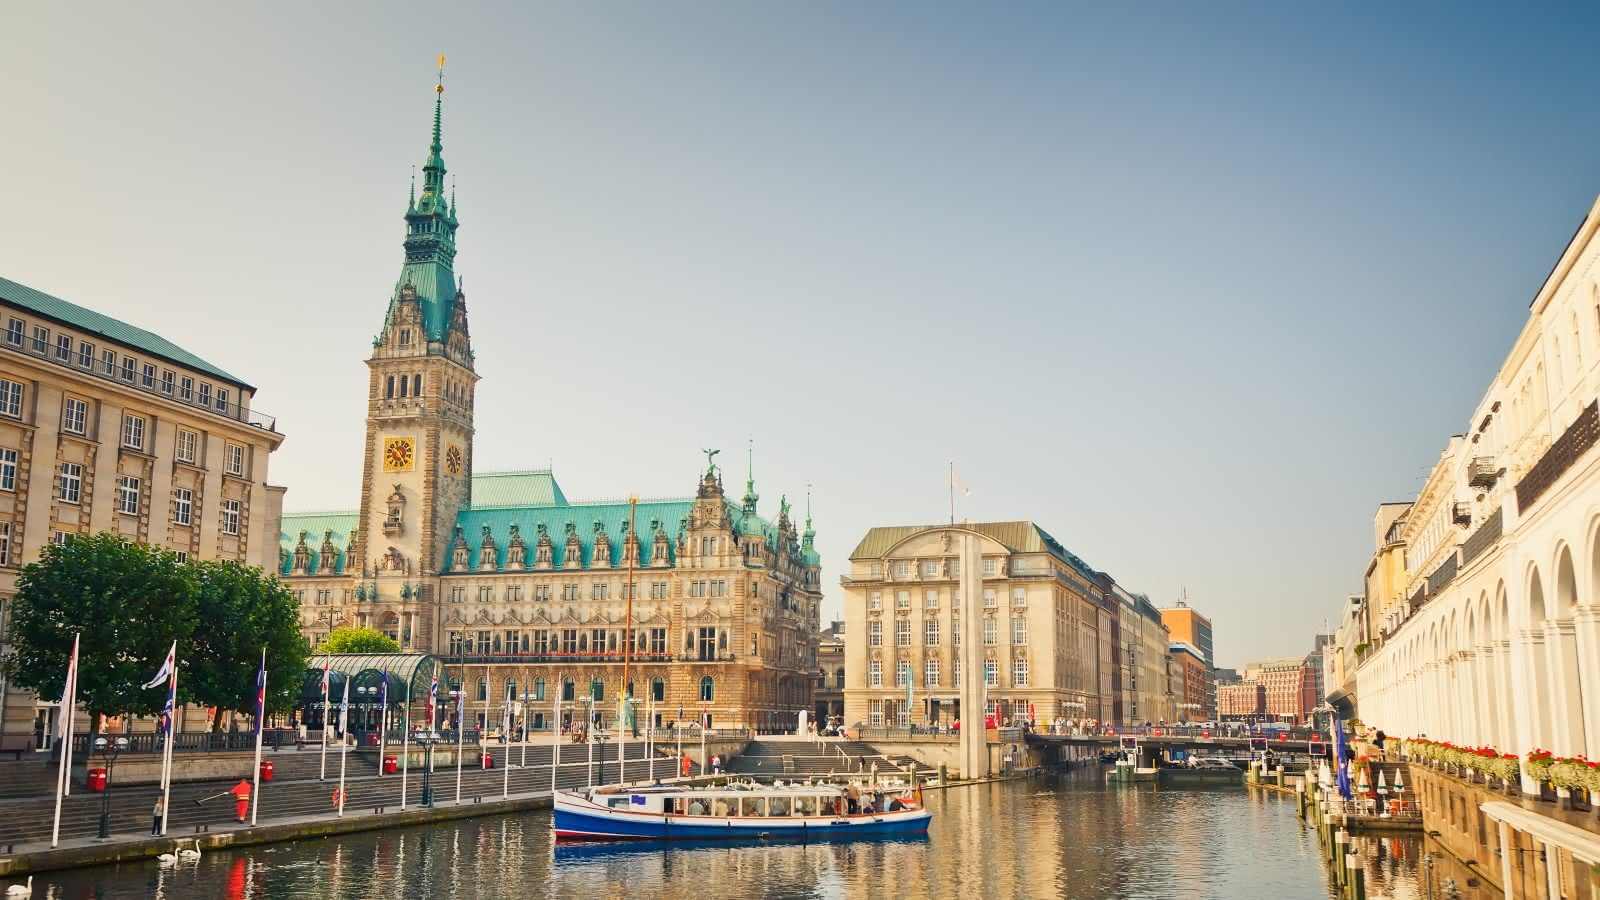 Views from the river to Hamburg's City Hall